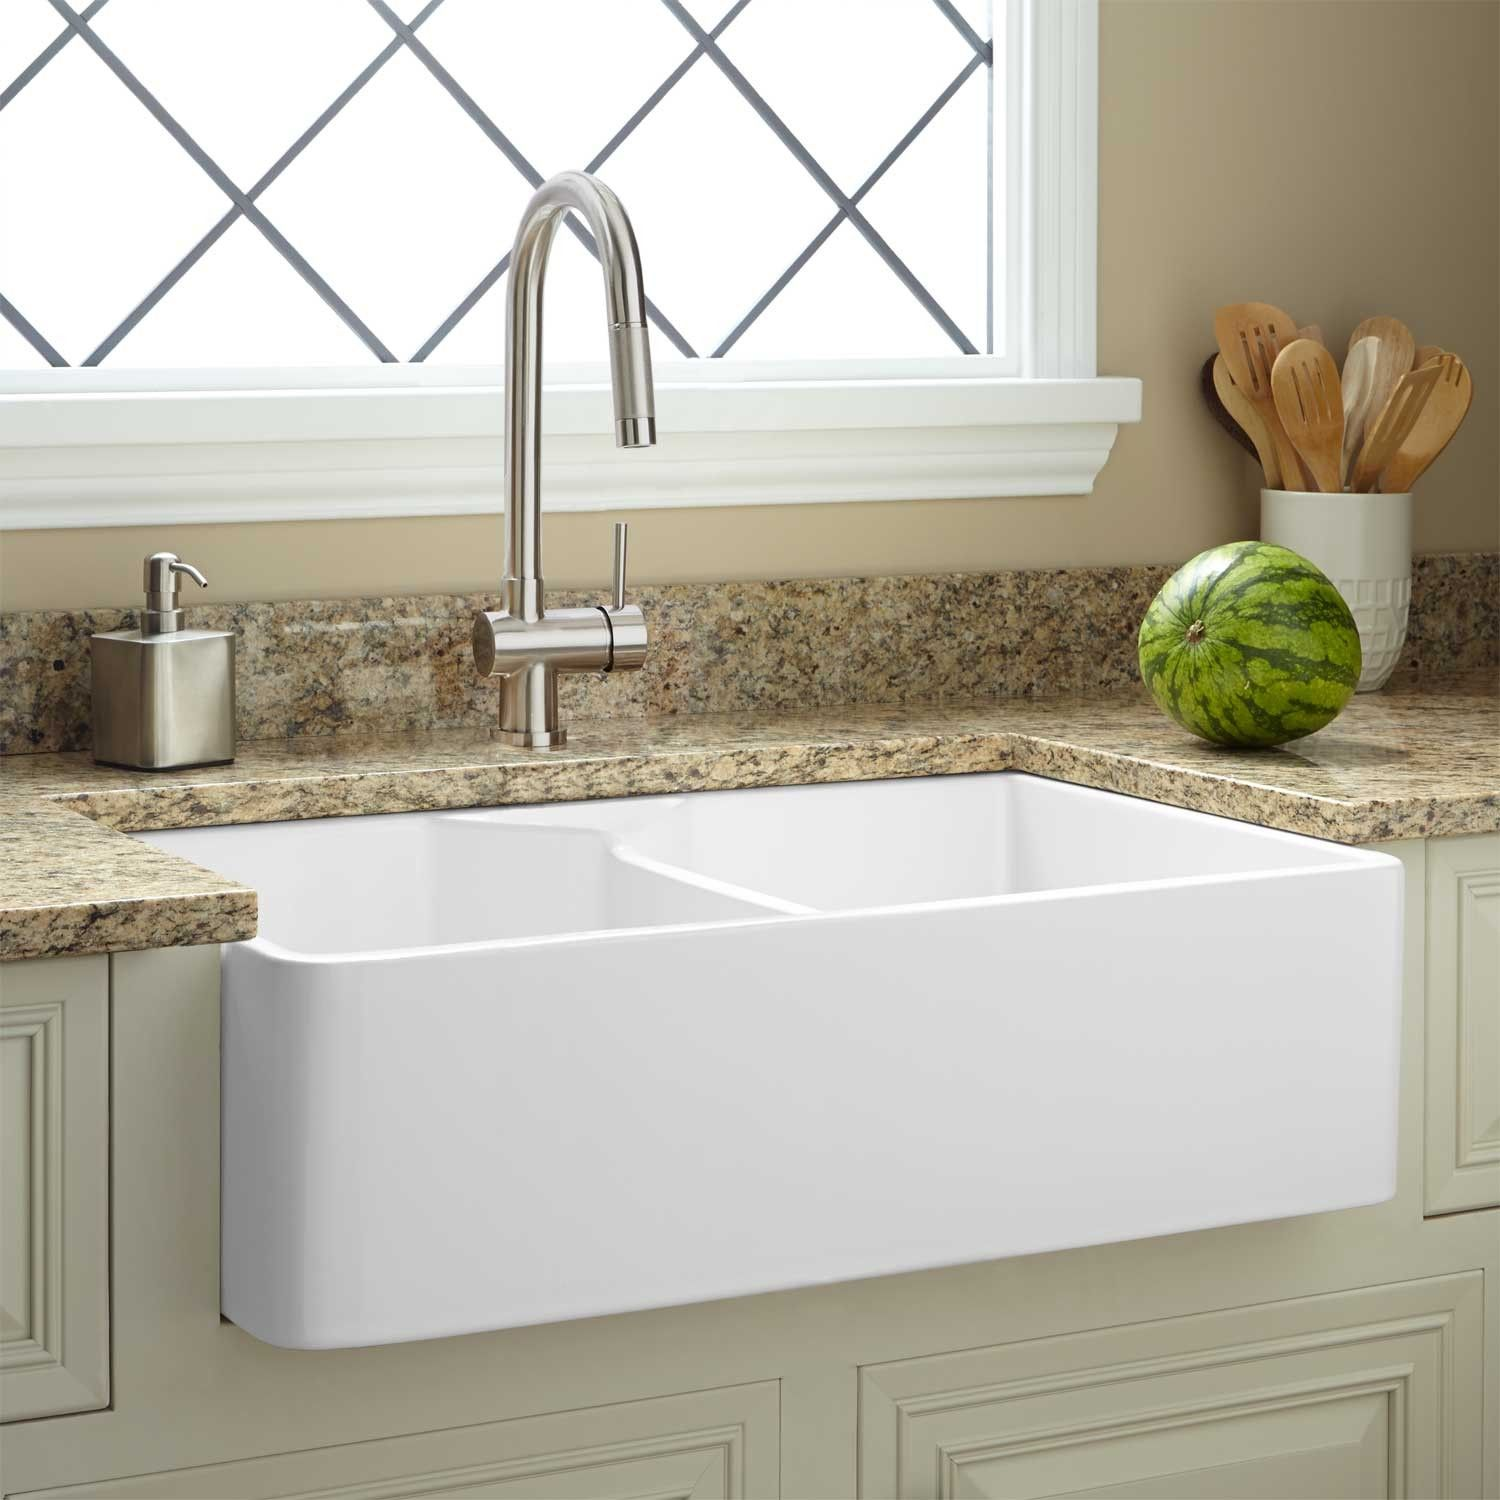 32 Chelton Double Bowl Fireclay Farmhouse Sink White Fireclay Farmhouse Sink Farmhouse Sink Sink